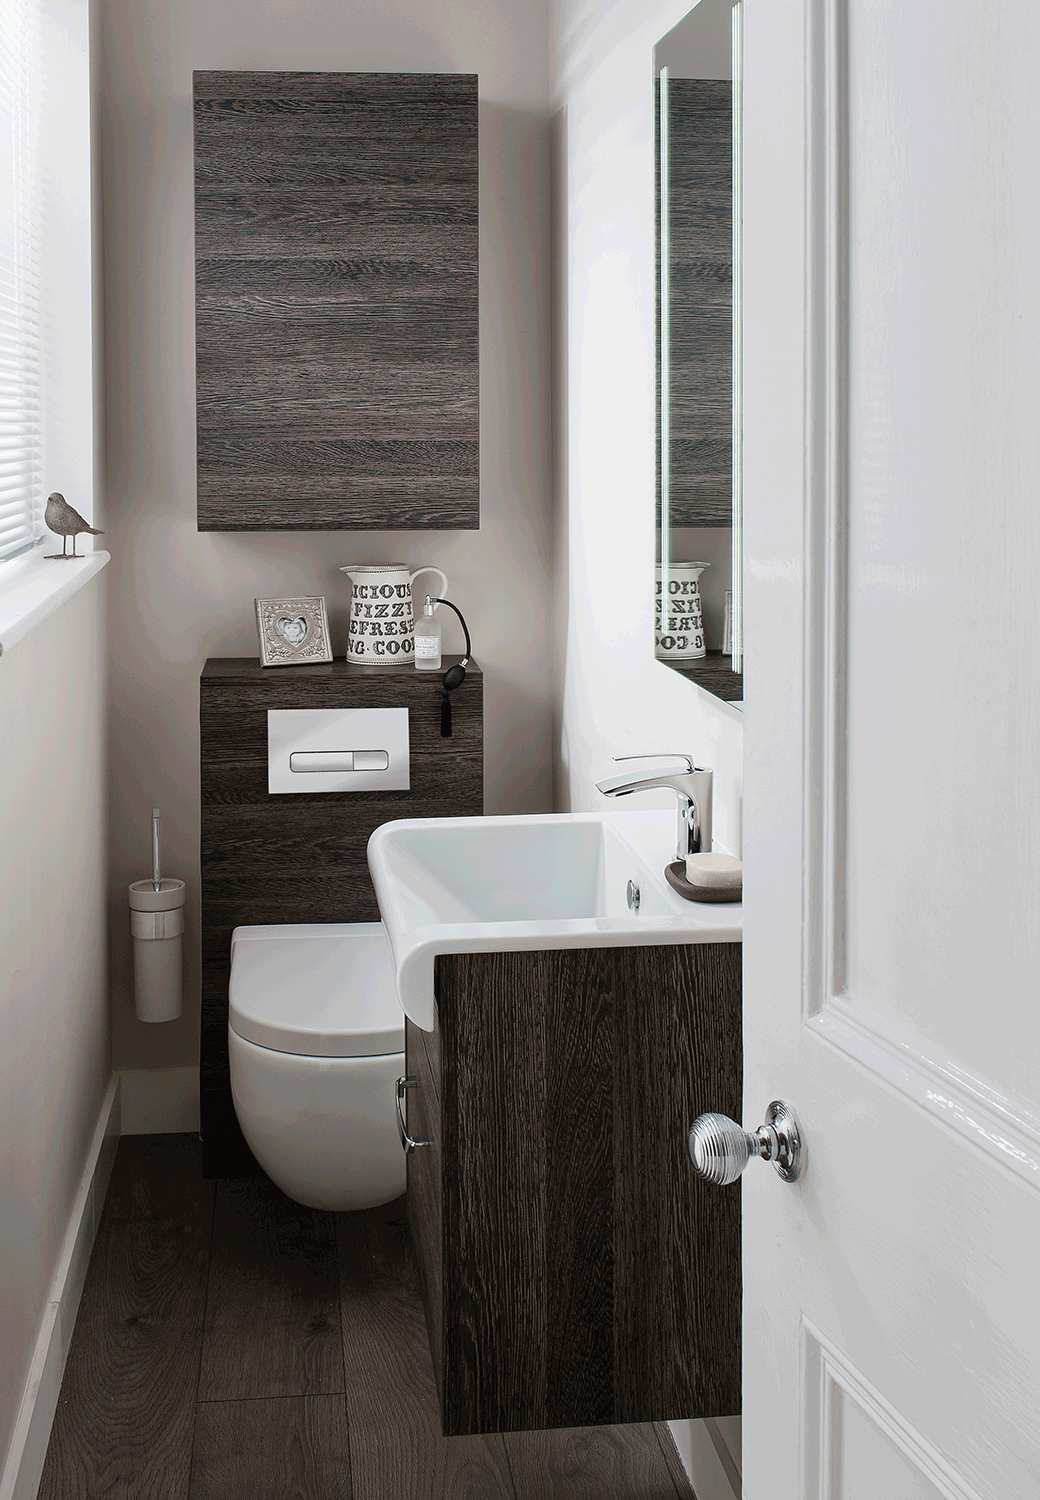 BATHLINEu0027s Cloakroom Bathroom Suite Combinations Are Pieced Together To  Perfectly Complement Small Bathroom Suites. Choose From Traditional And  Contemporary ...